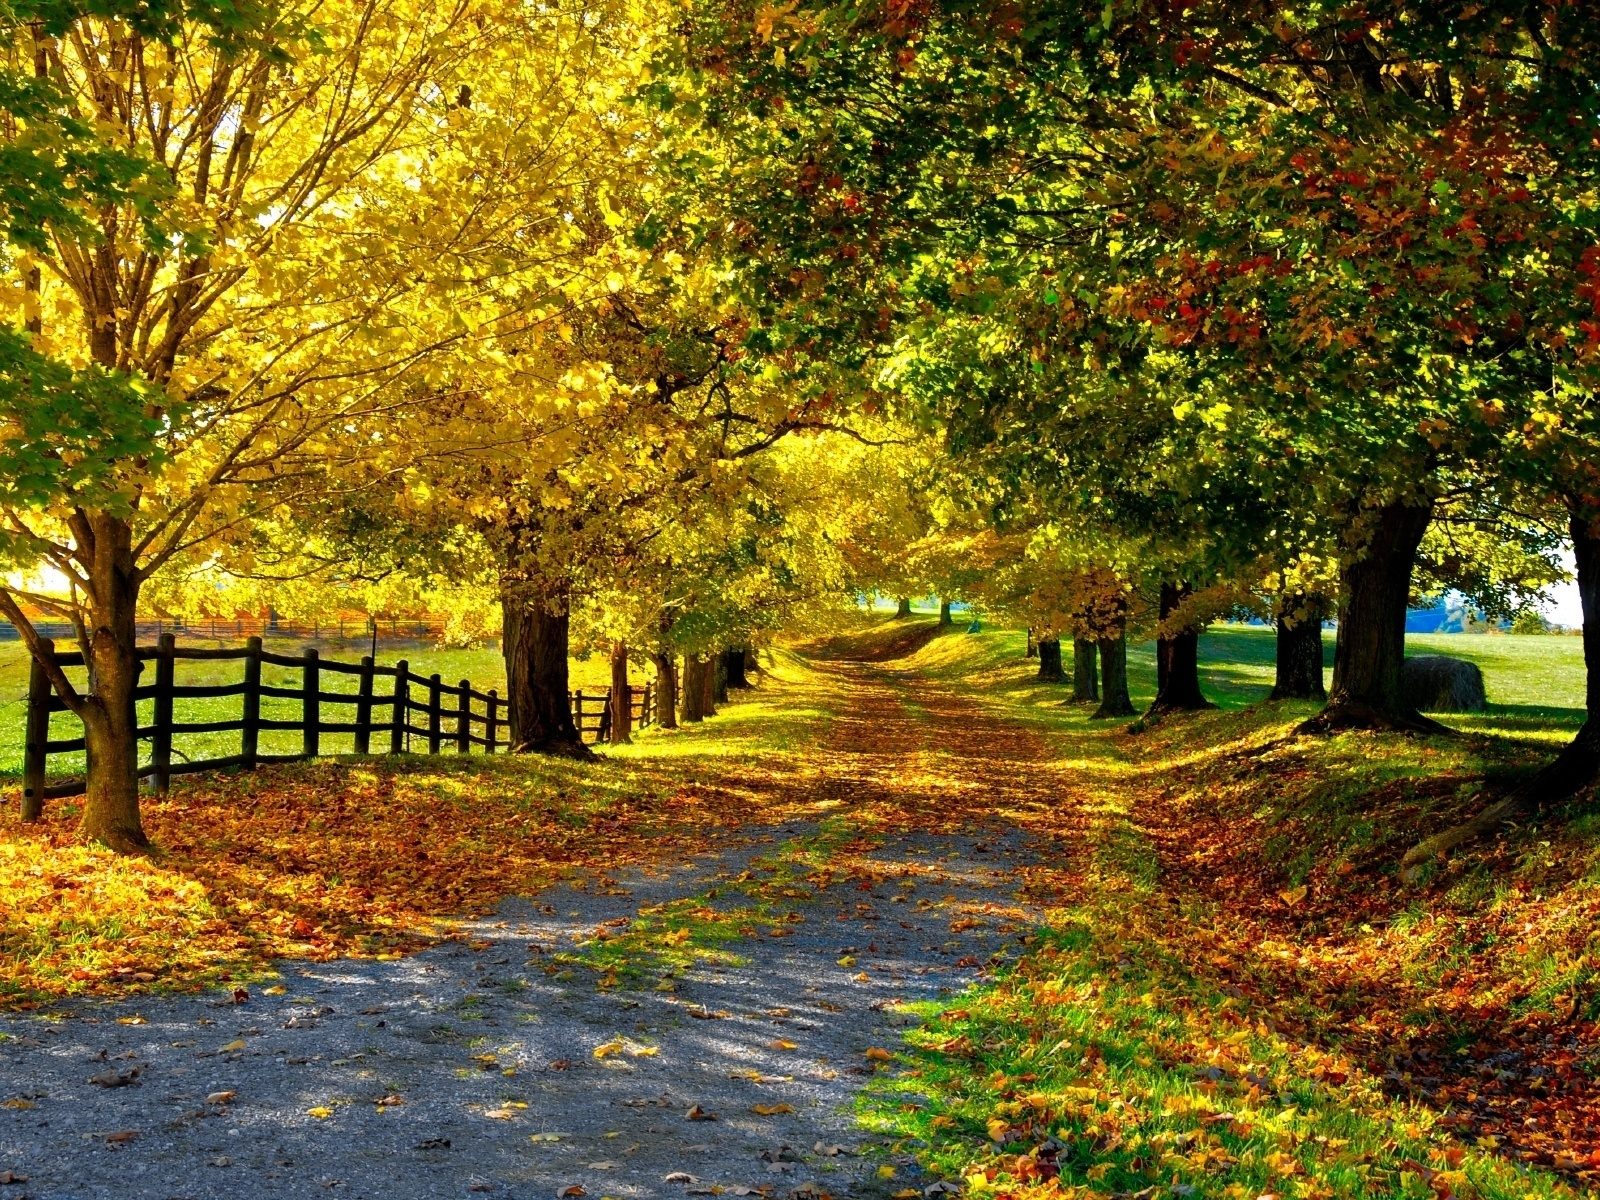 21451 download wallpaper Landscape, Trees, Roads, Autumn screensavers and pictures for free